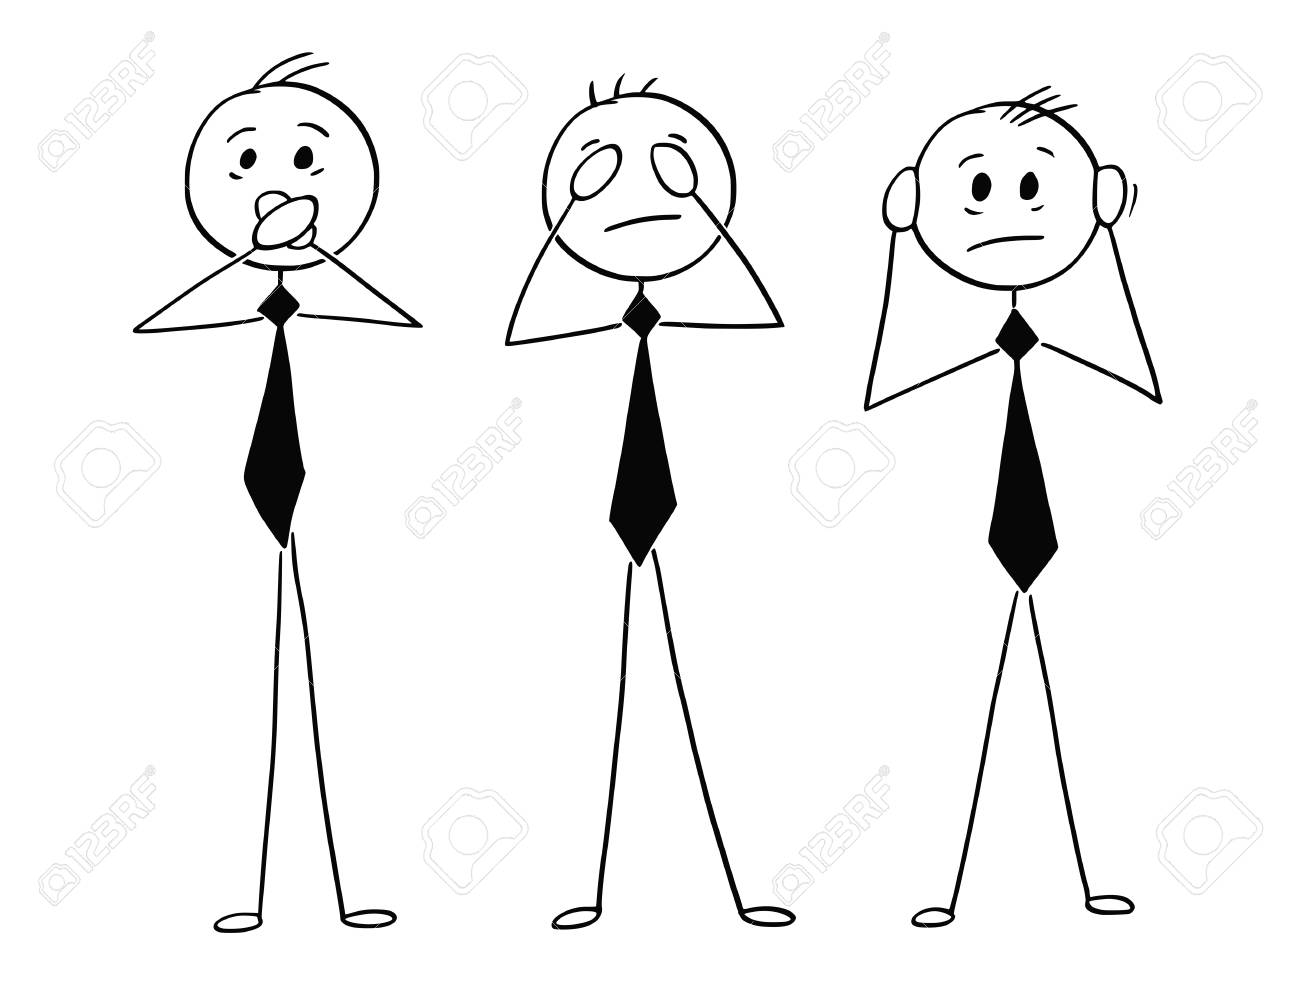 Cartoon stick man drawing conceptual illustration of three businessmen who see no evil, hear no evil and speak no evil. Inspired by three wise monkeys legend. - 93160649